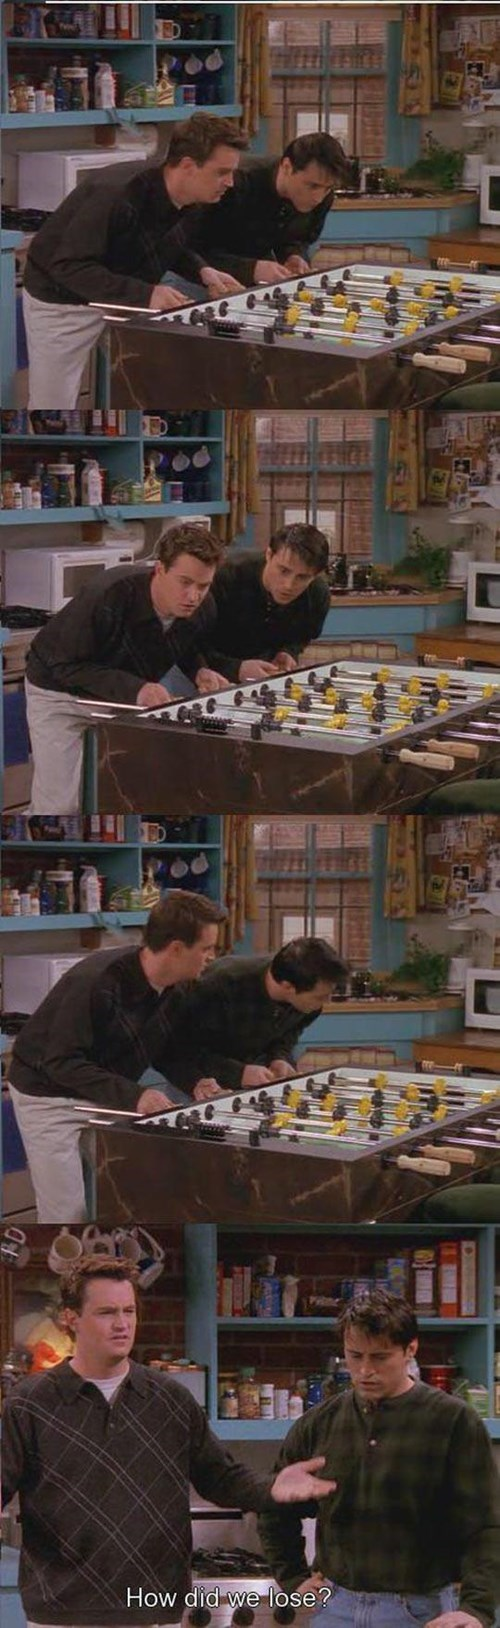 games friends lose foosball - 8186706944